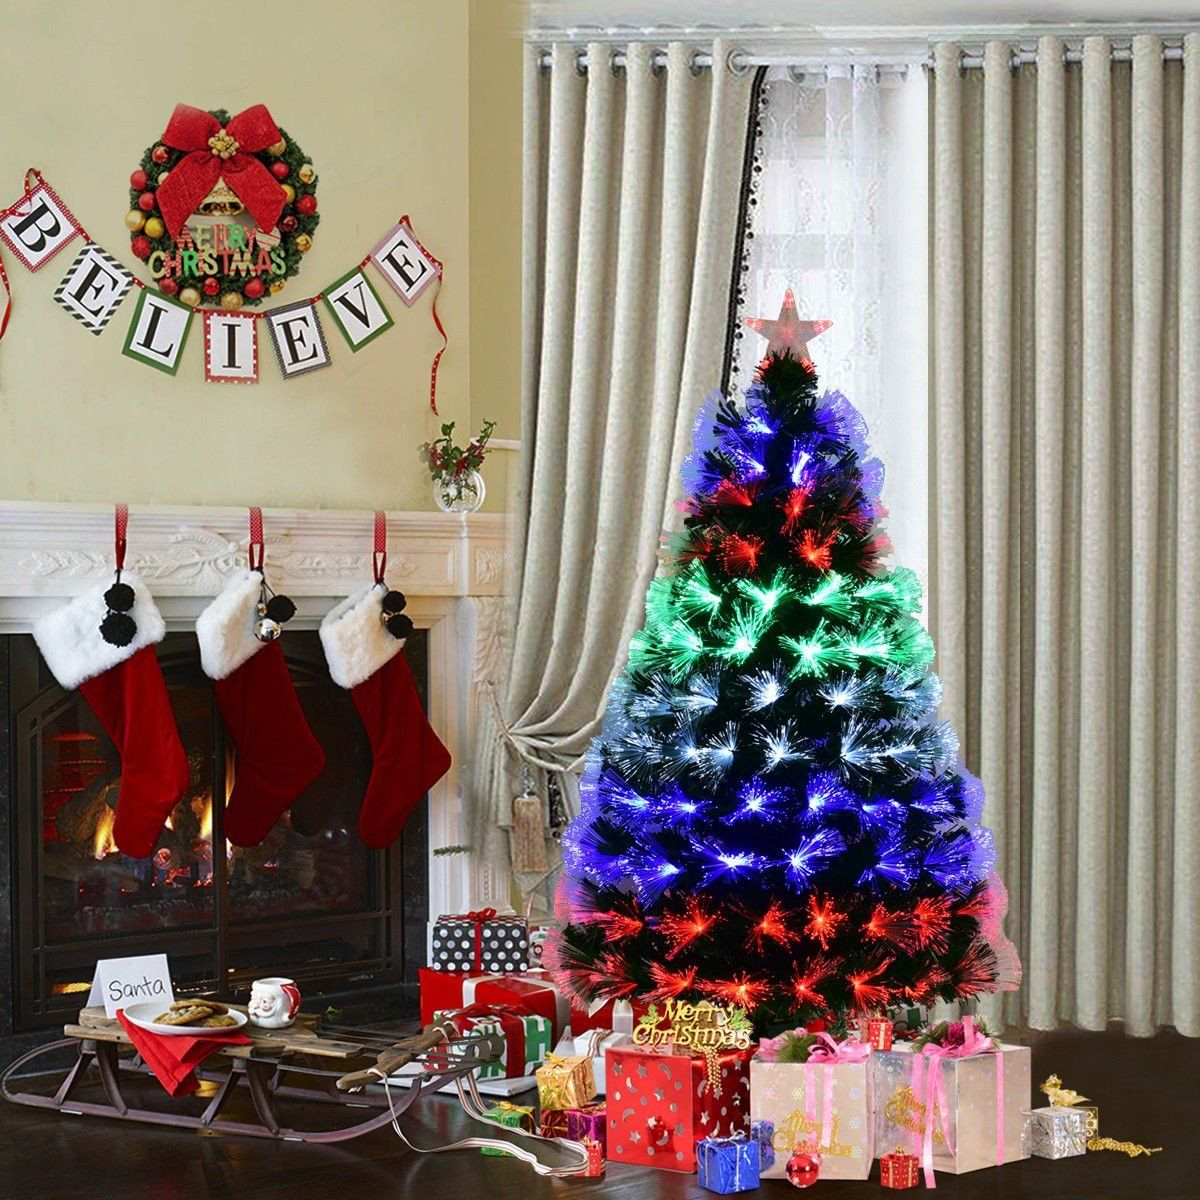 Apontus 5 Fiber Artificial Christmas Tree W Multicolor Lights And Stand Check Out Fiber Optic Christmas Tree Pencil Christmas Tree Artificial Christmas Tree